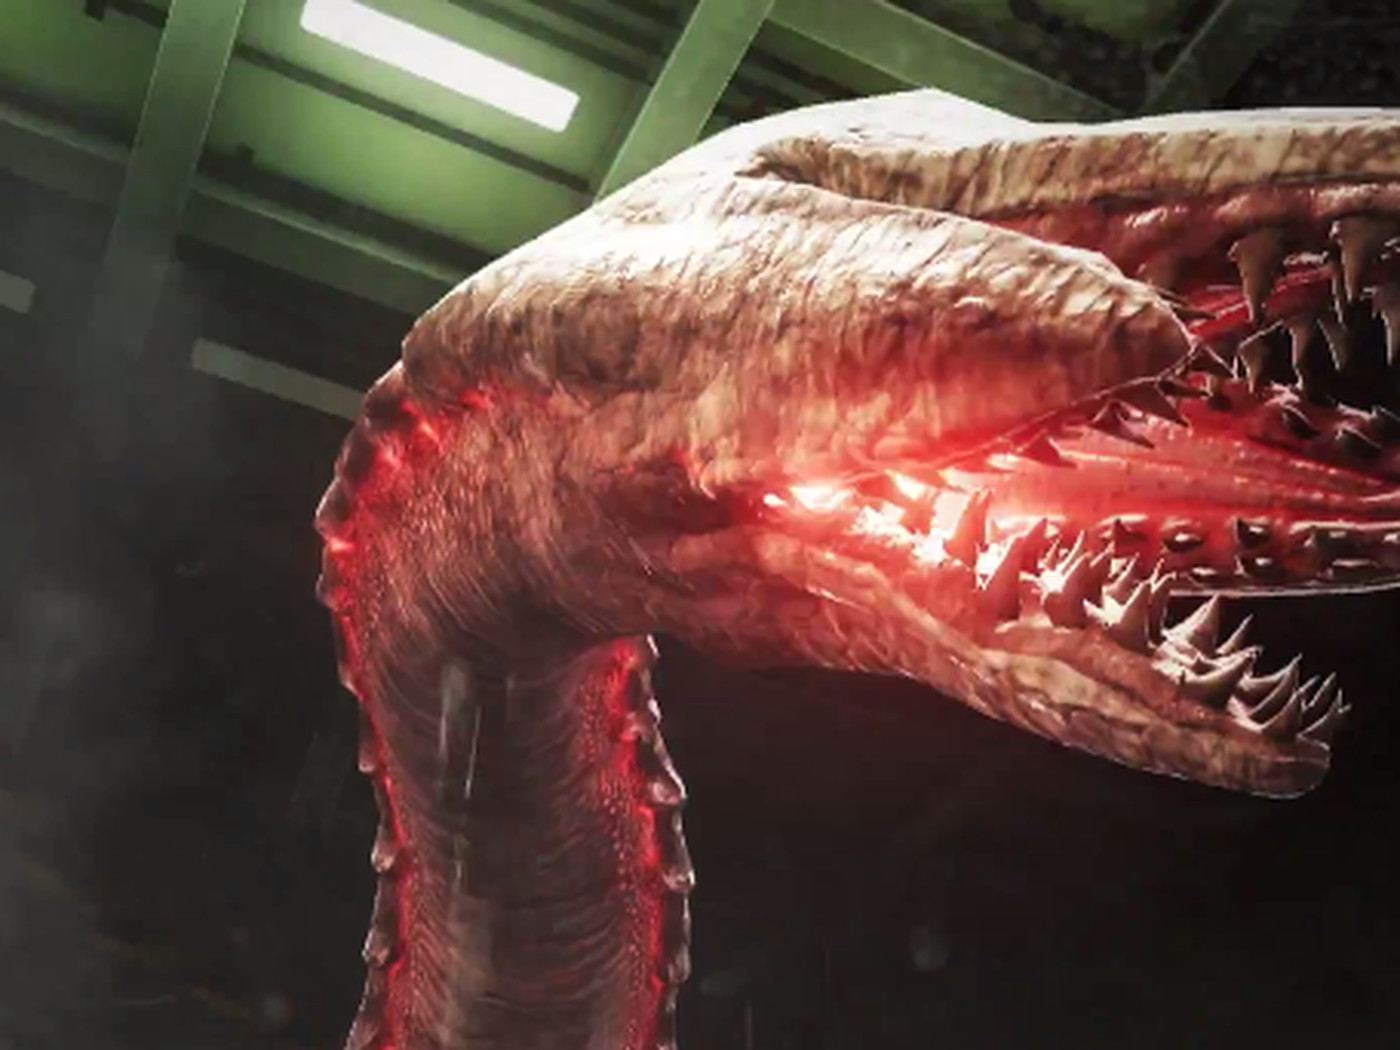 Call Of Duty Ghosts Extinction Trailer Teases Trouble In Episode